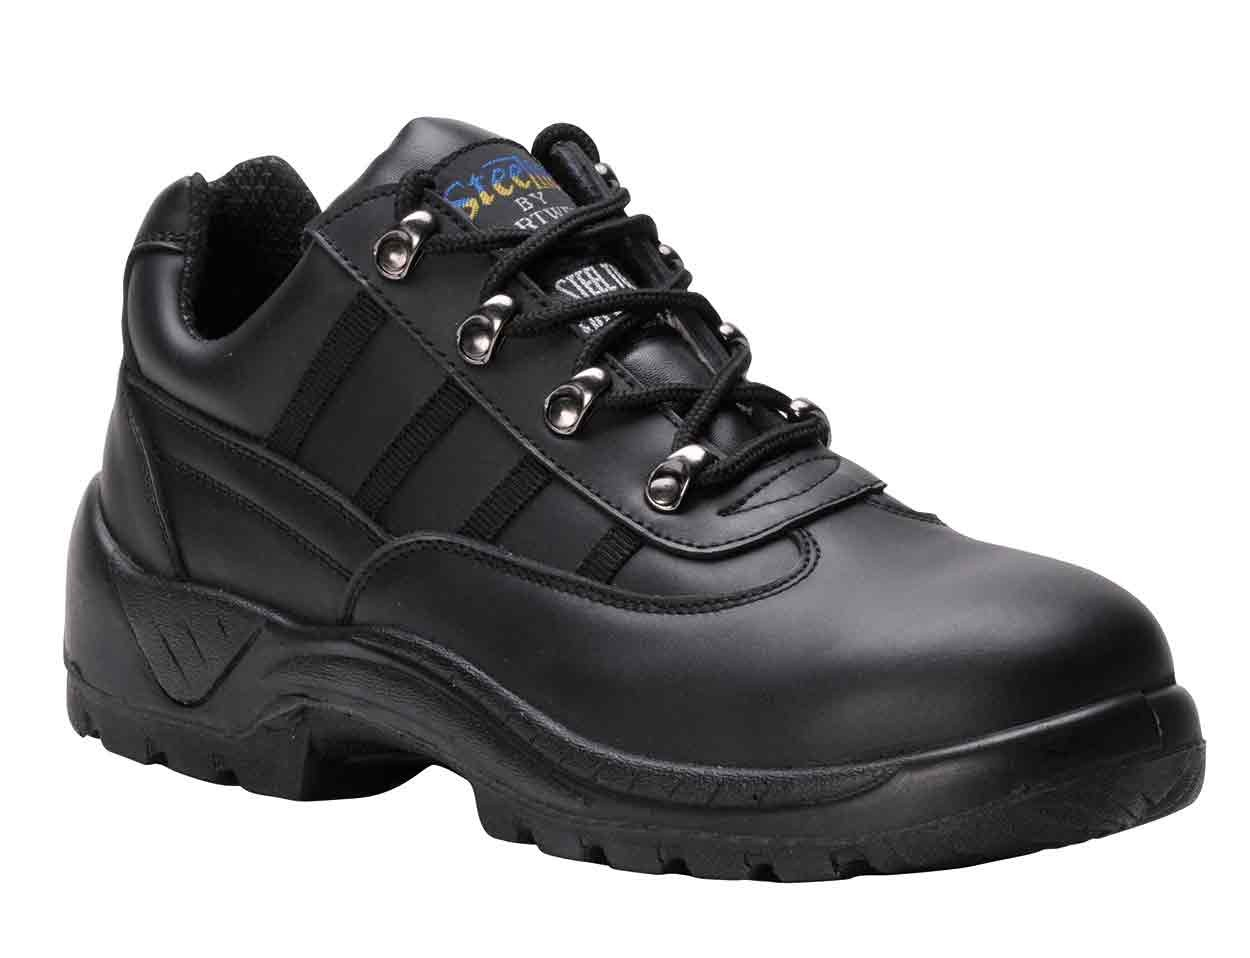 46769adb767 Portwest FW25 Safety Trainer S1P - Safety Shoes and Trainers - Mens ...